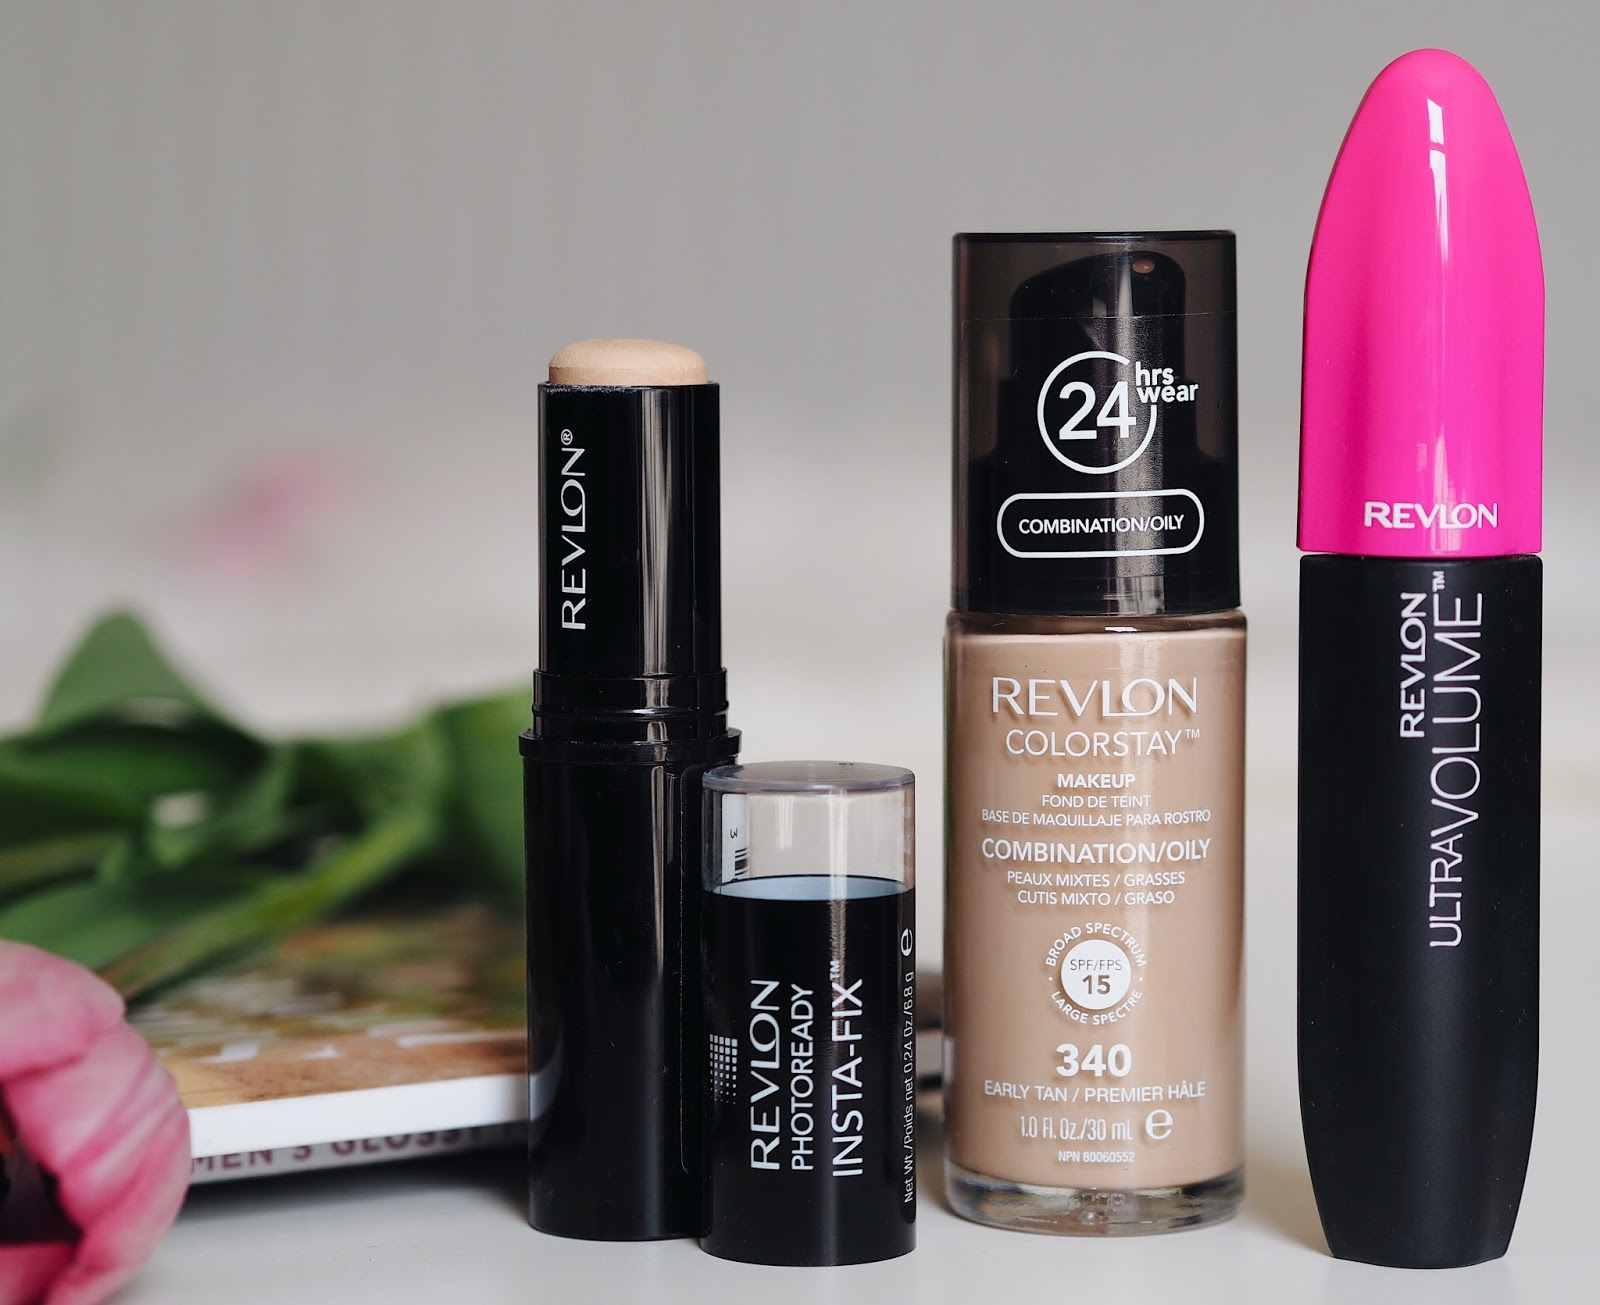 THREE NEW MAKEUP BAG ADDITIONS THAT I LOVE